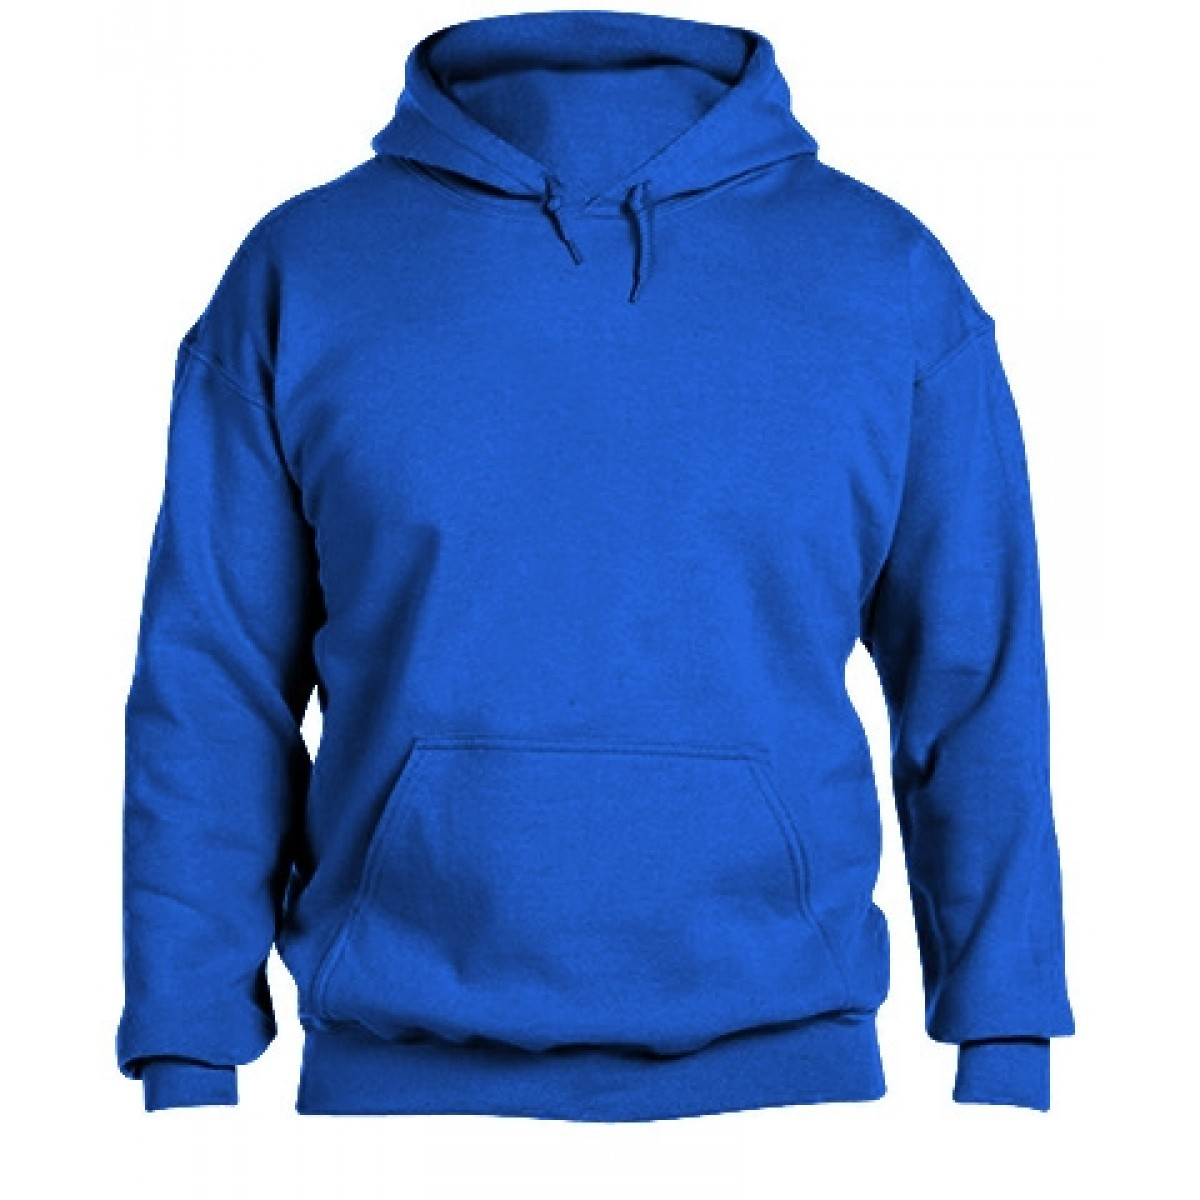 Solid Hooded Sweatshirt  50/50 Heavy Blend-Royal Blue-YL